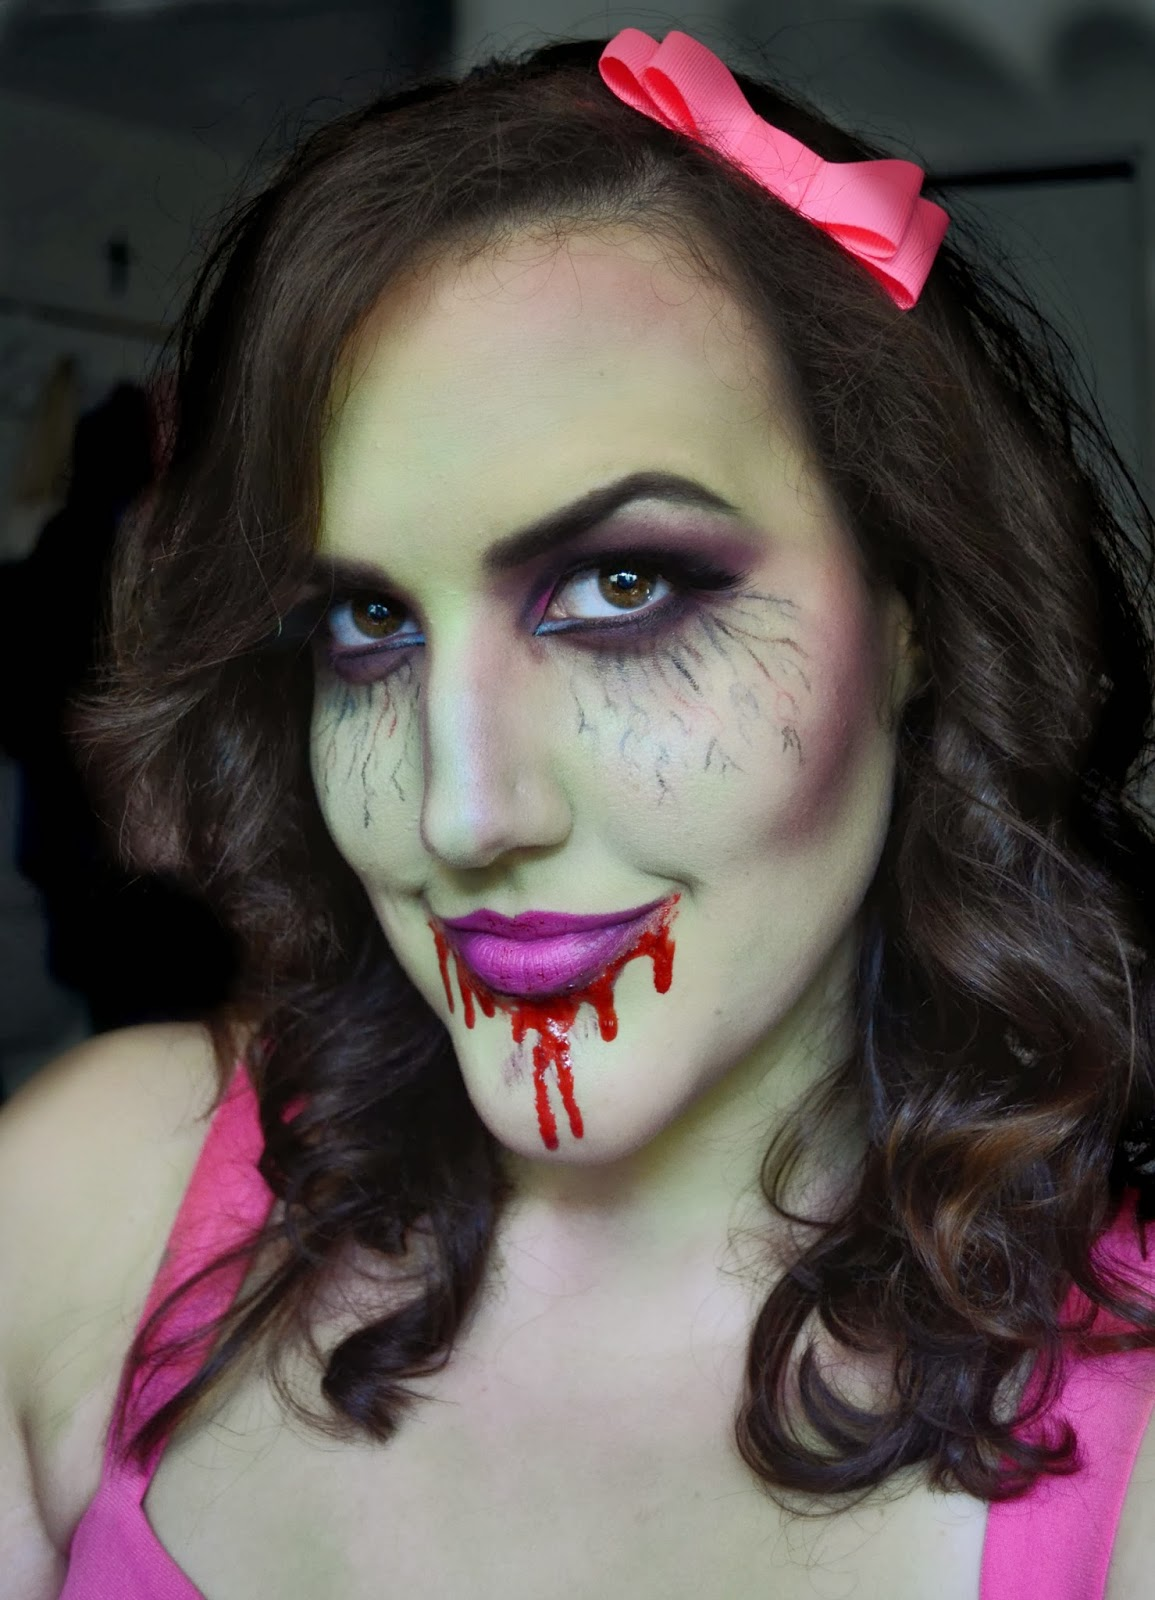 Girly zombie makeup